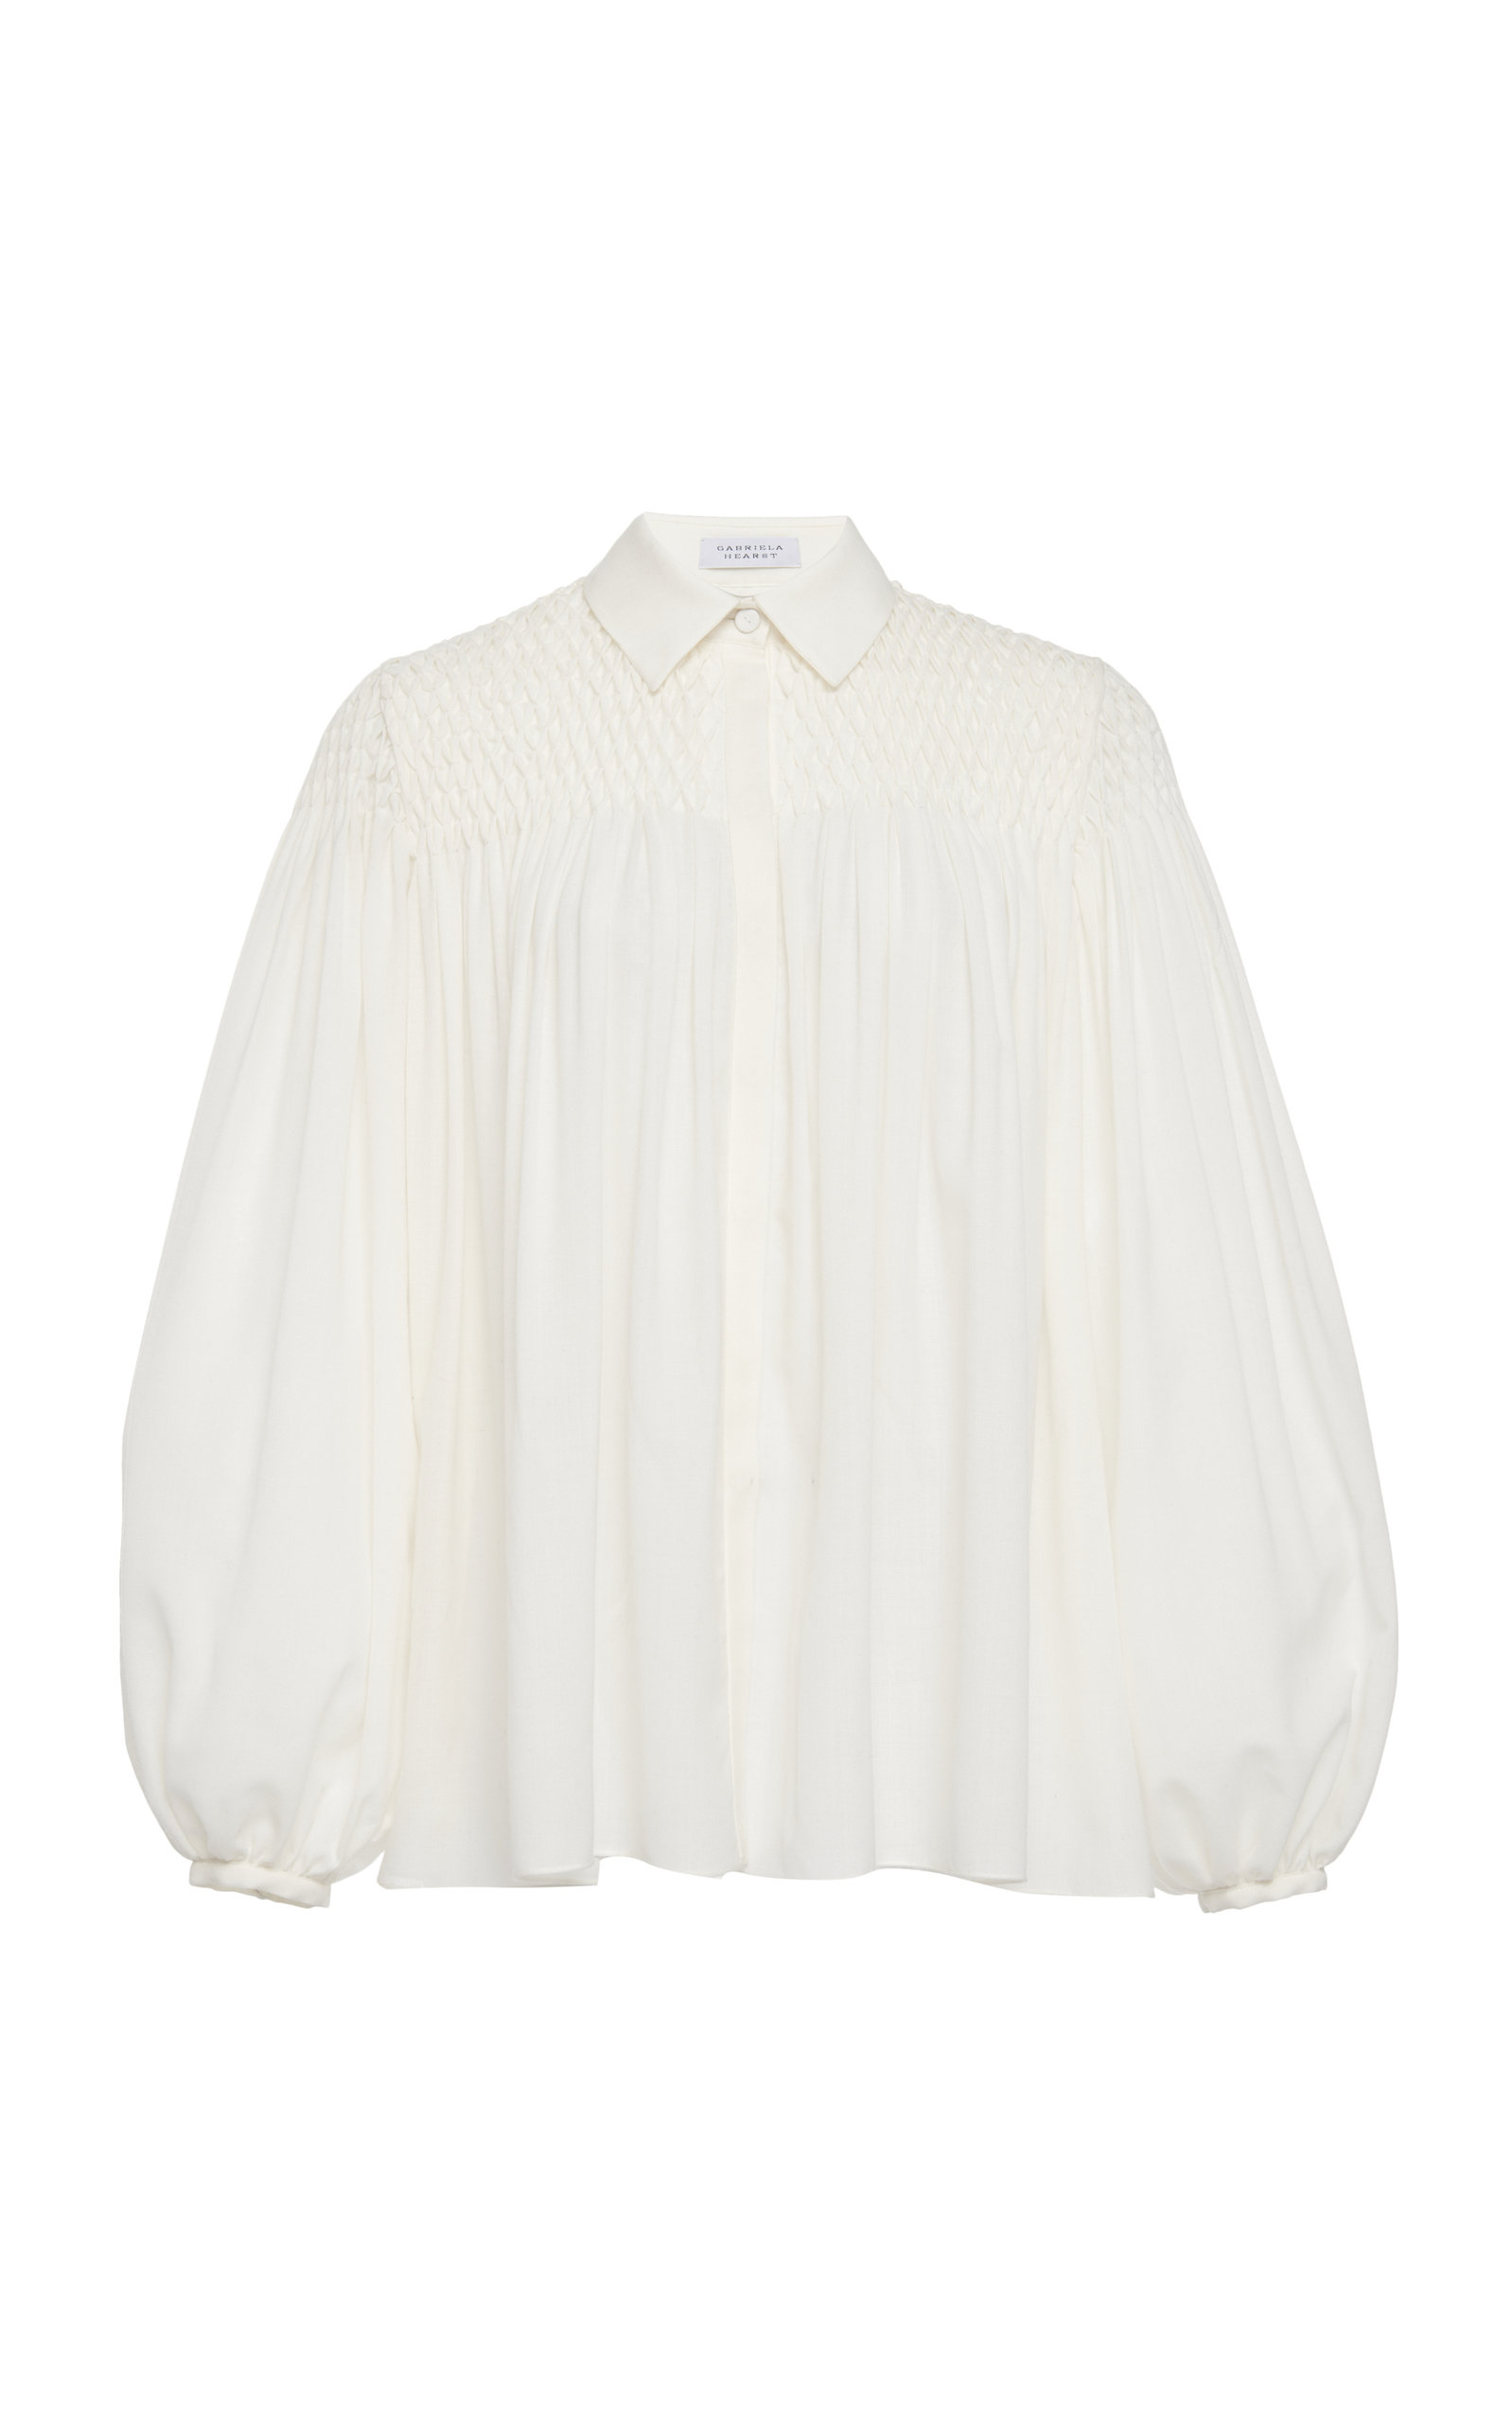 Gabriela Hearst Tops Carmen Wool And Cashmere Smocked Blouse